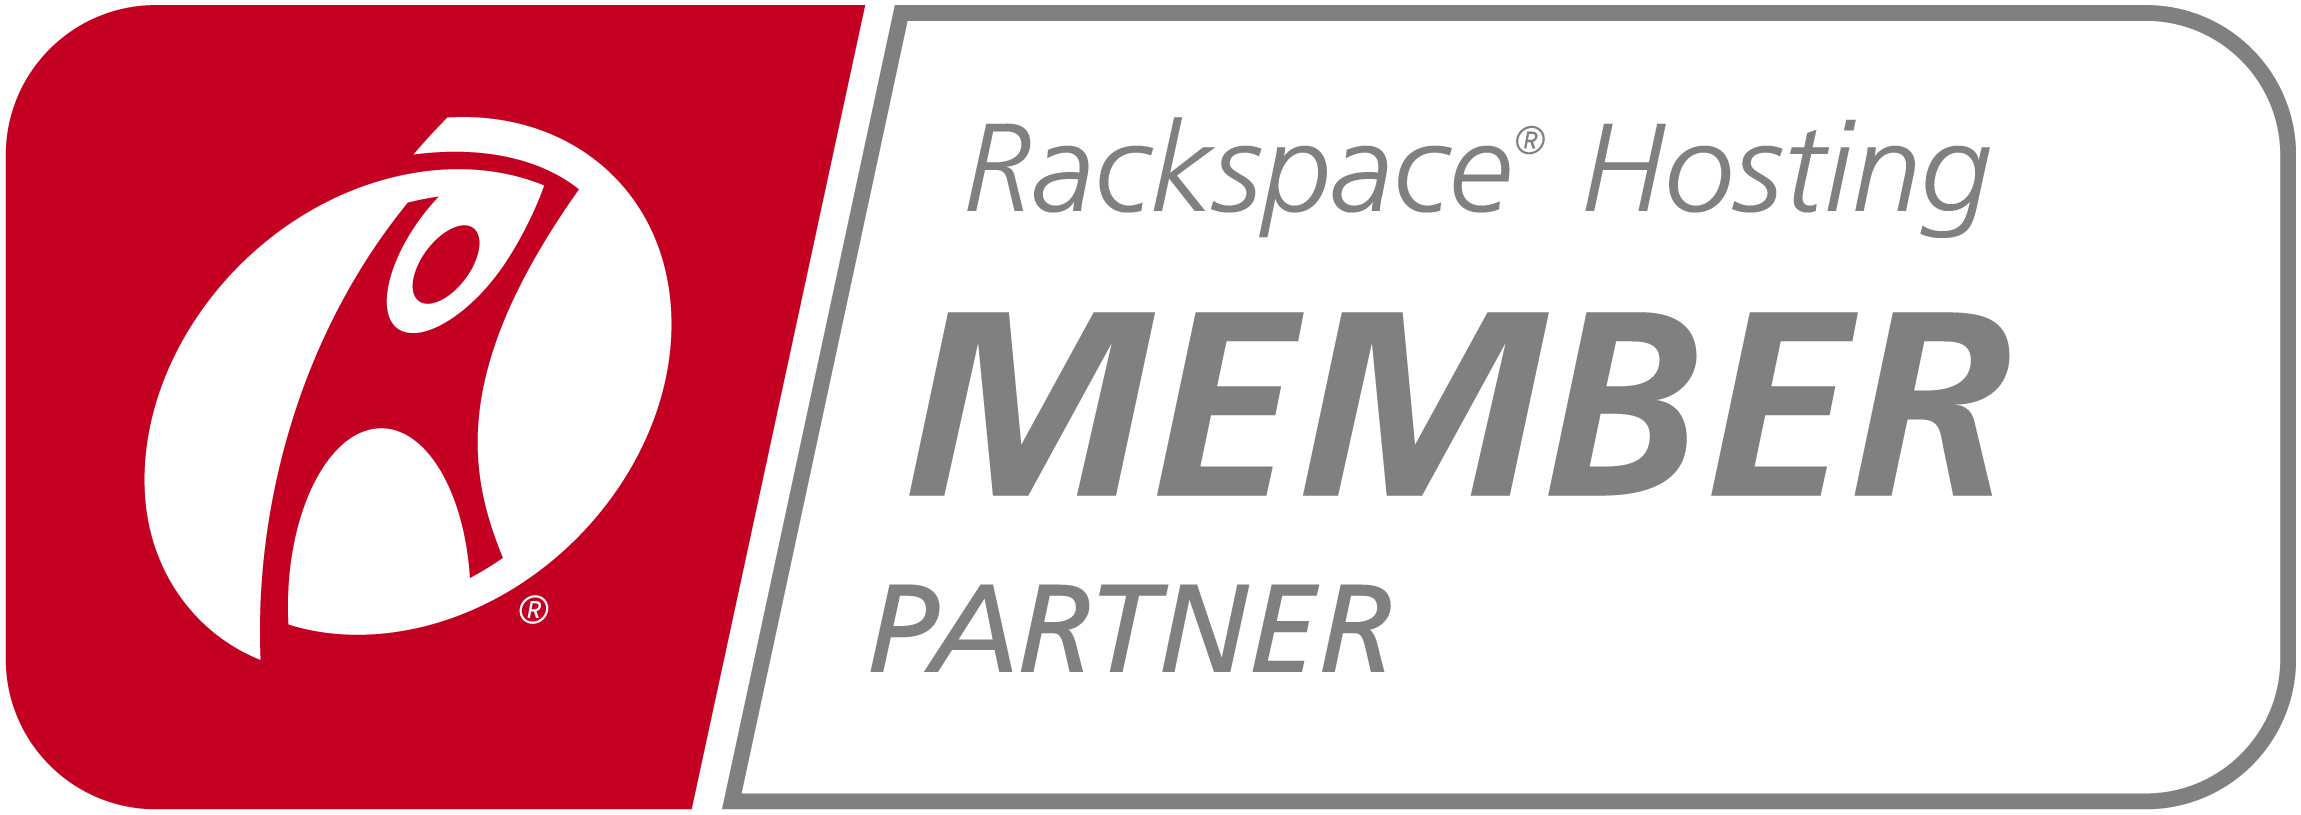 Rack Space Partner